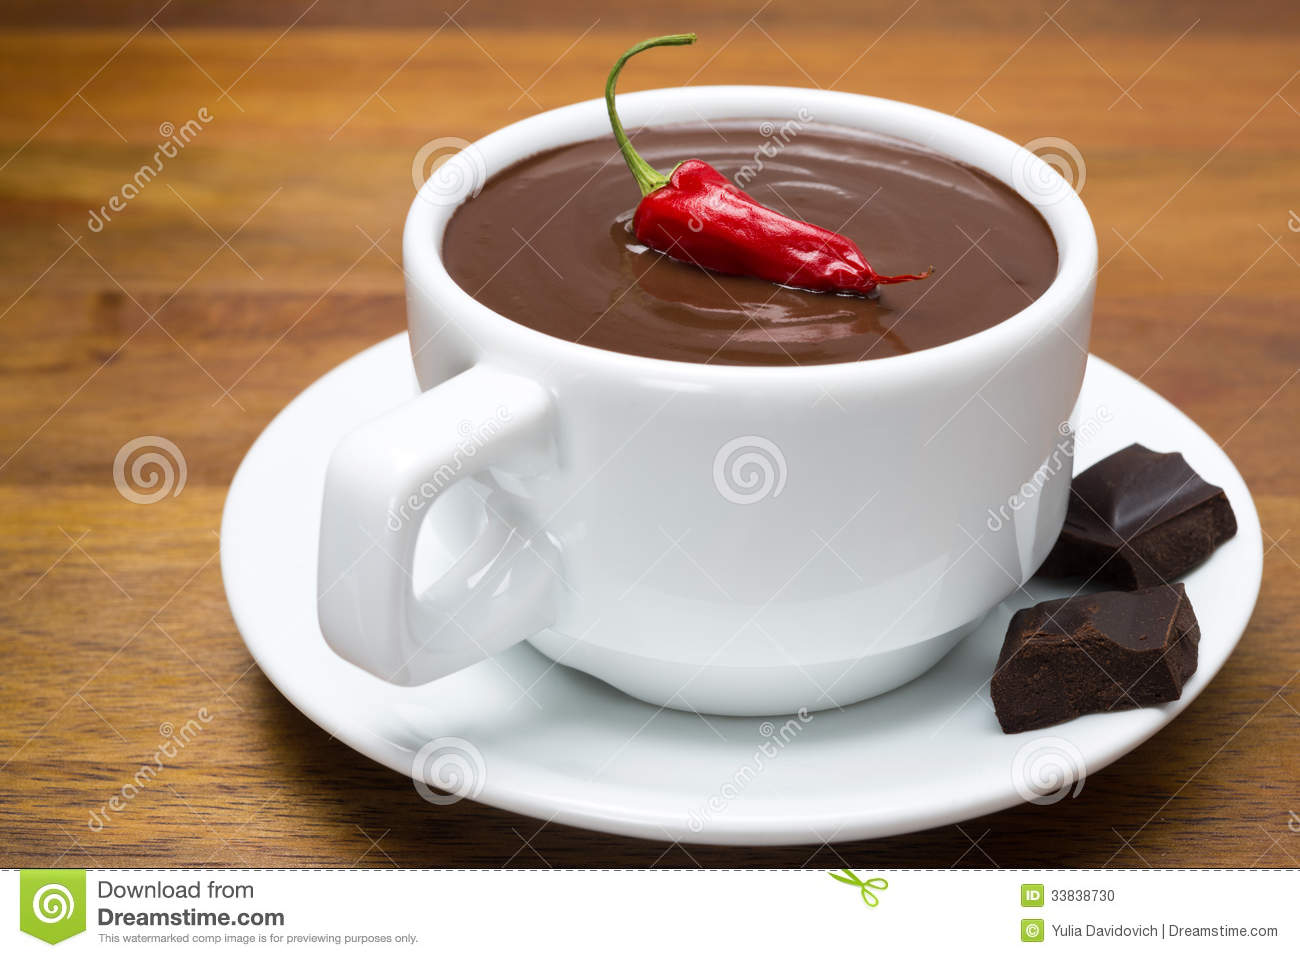 Cup of hot chocolate with chili peppers on a wooden background, close ...